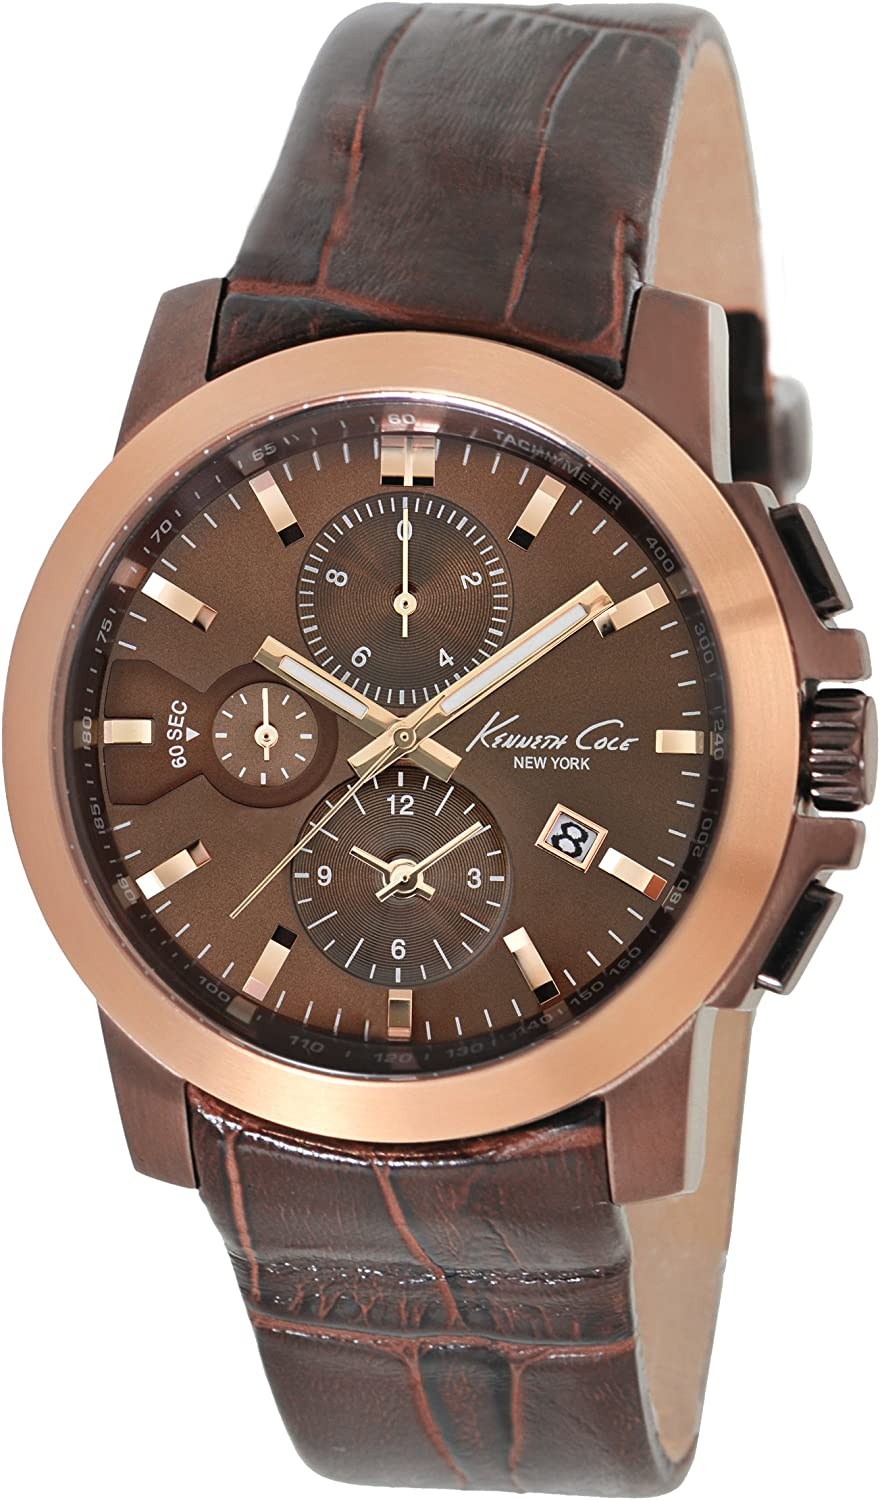 Kenneth Cole New York Men s Japanese Quartz Stainless Steel Case Leather Strap Brown, Model KC1884